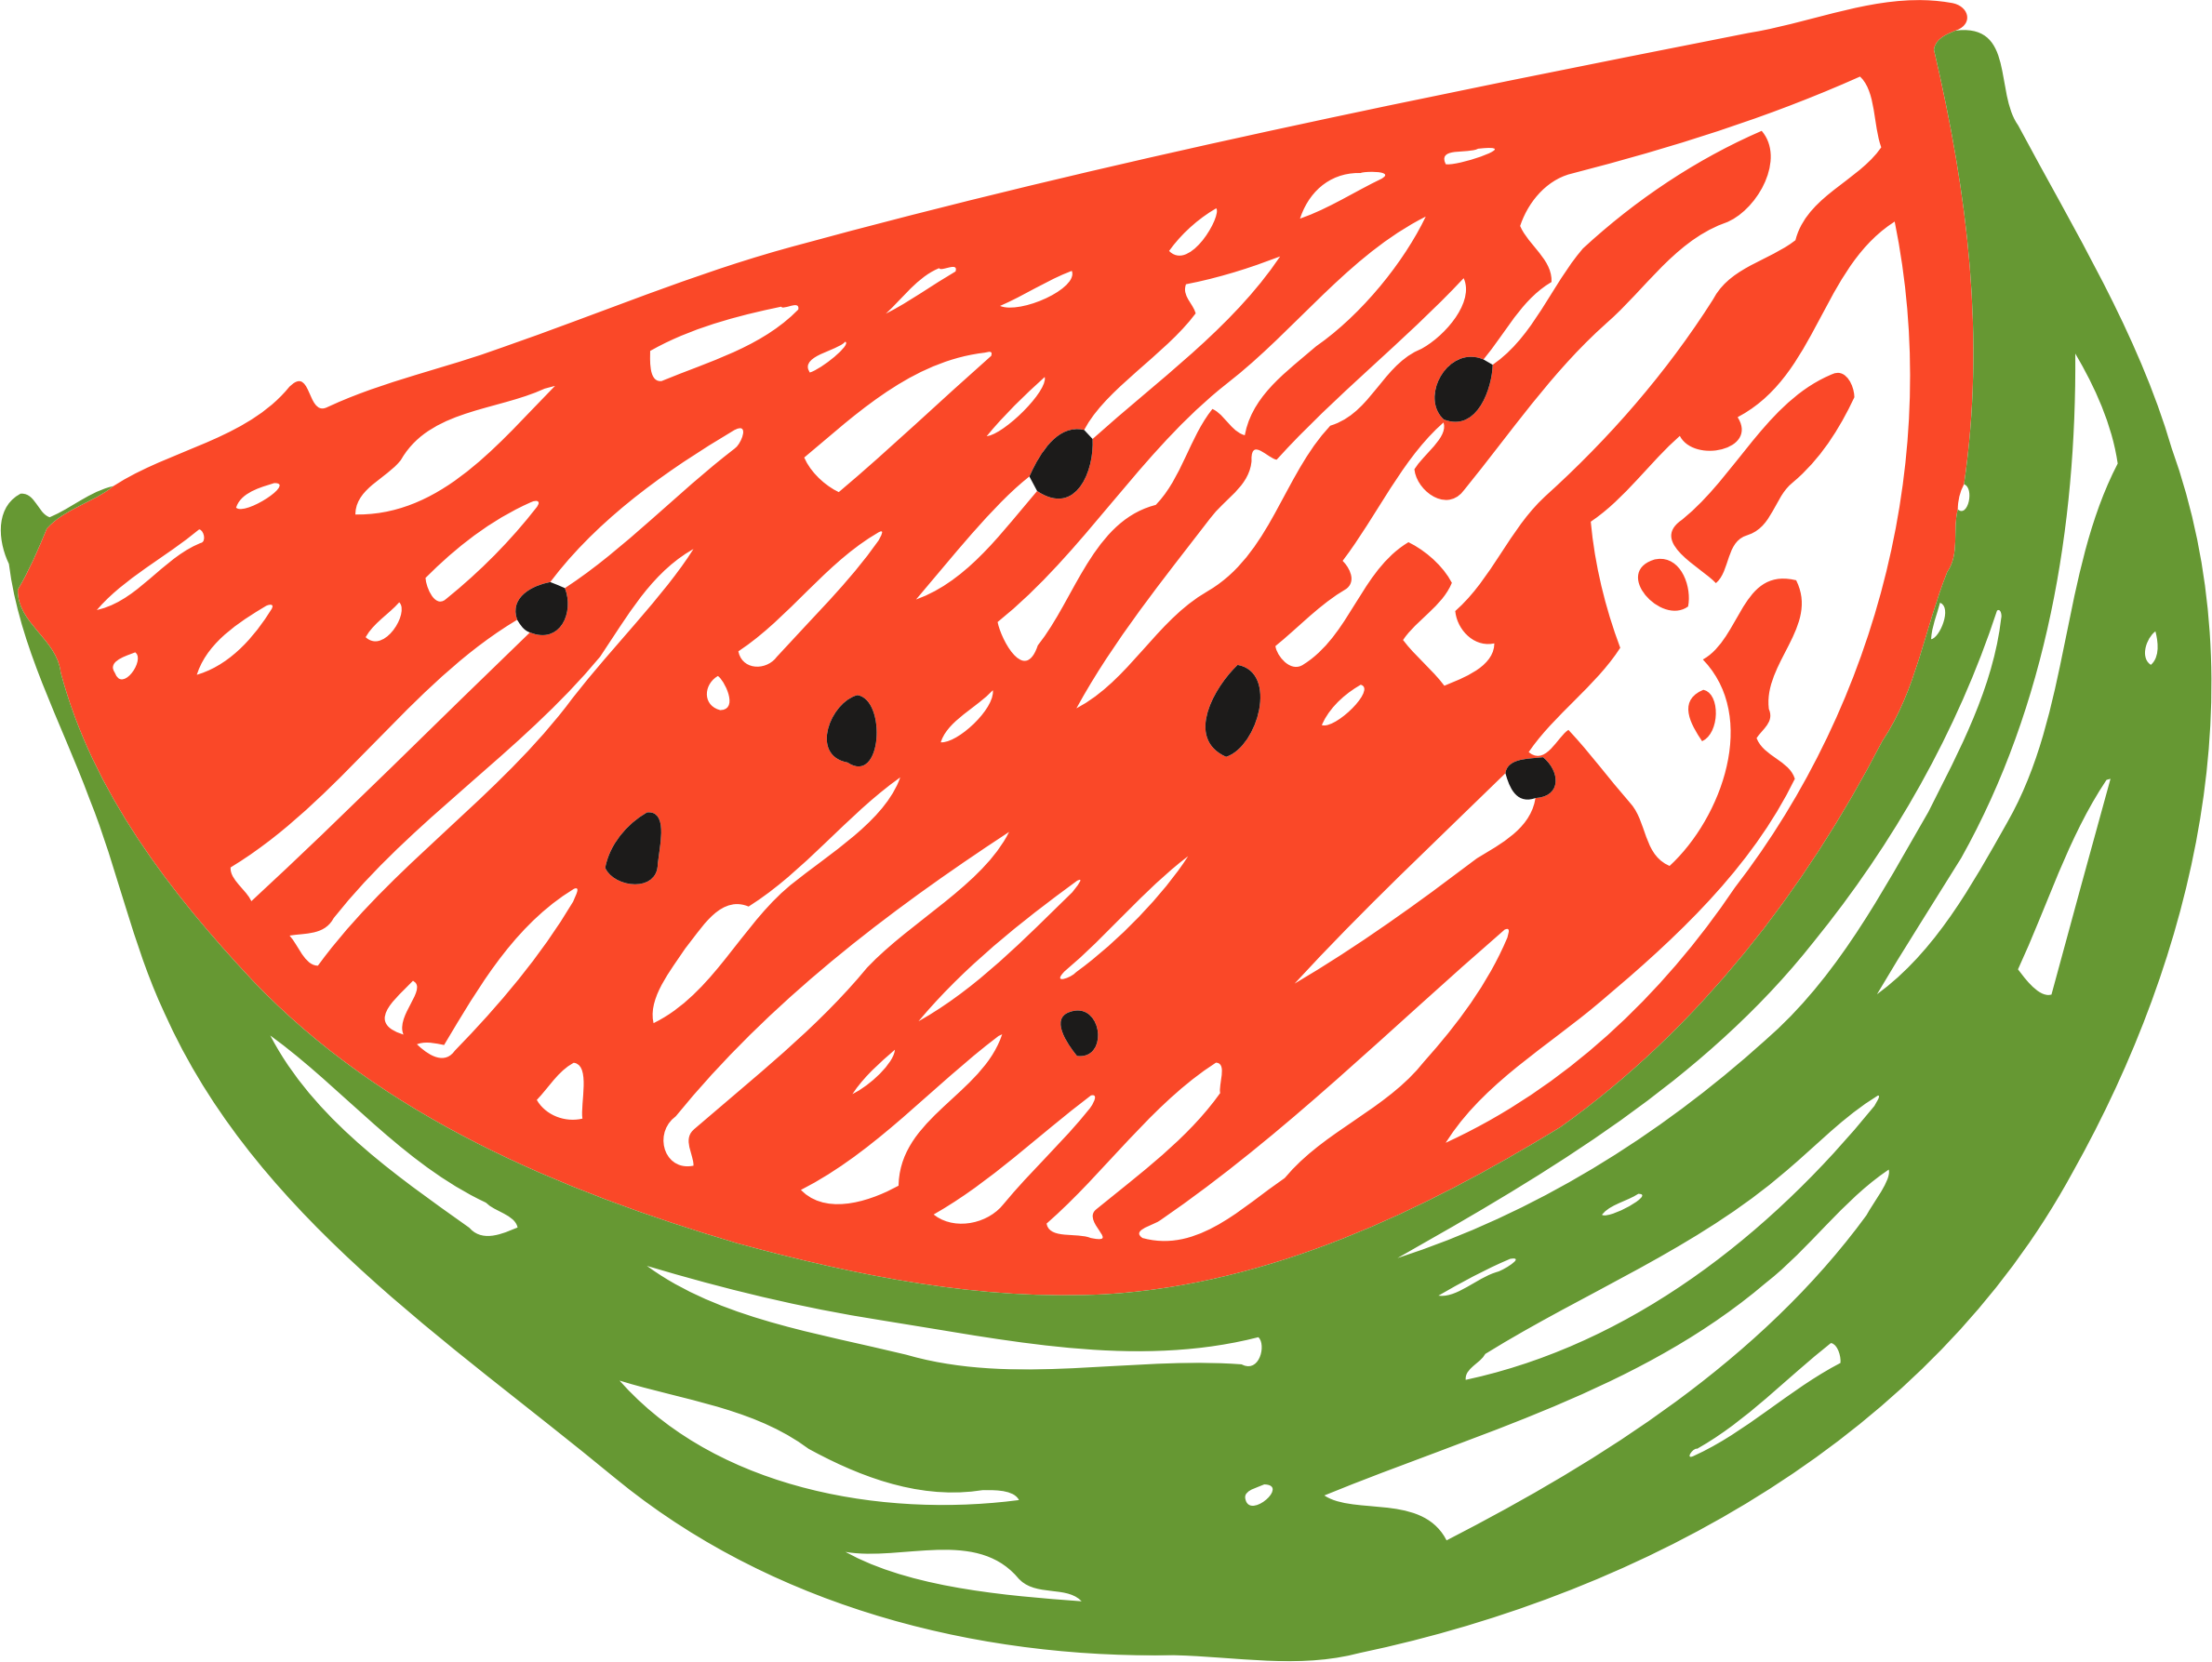 Fruit clipart watermelon. Sketched big image png